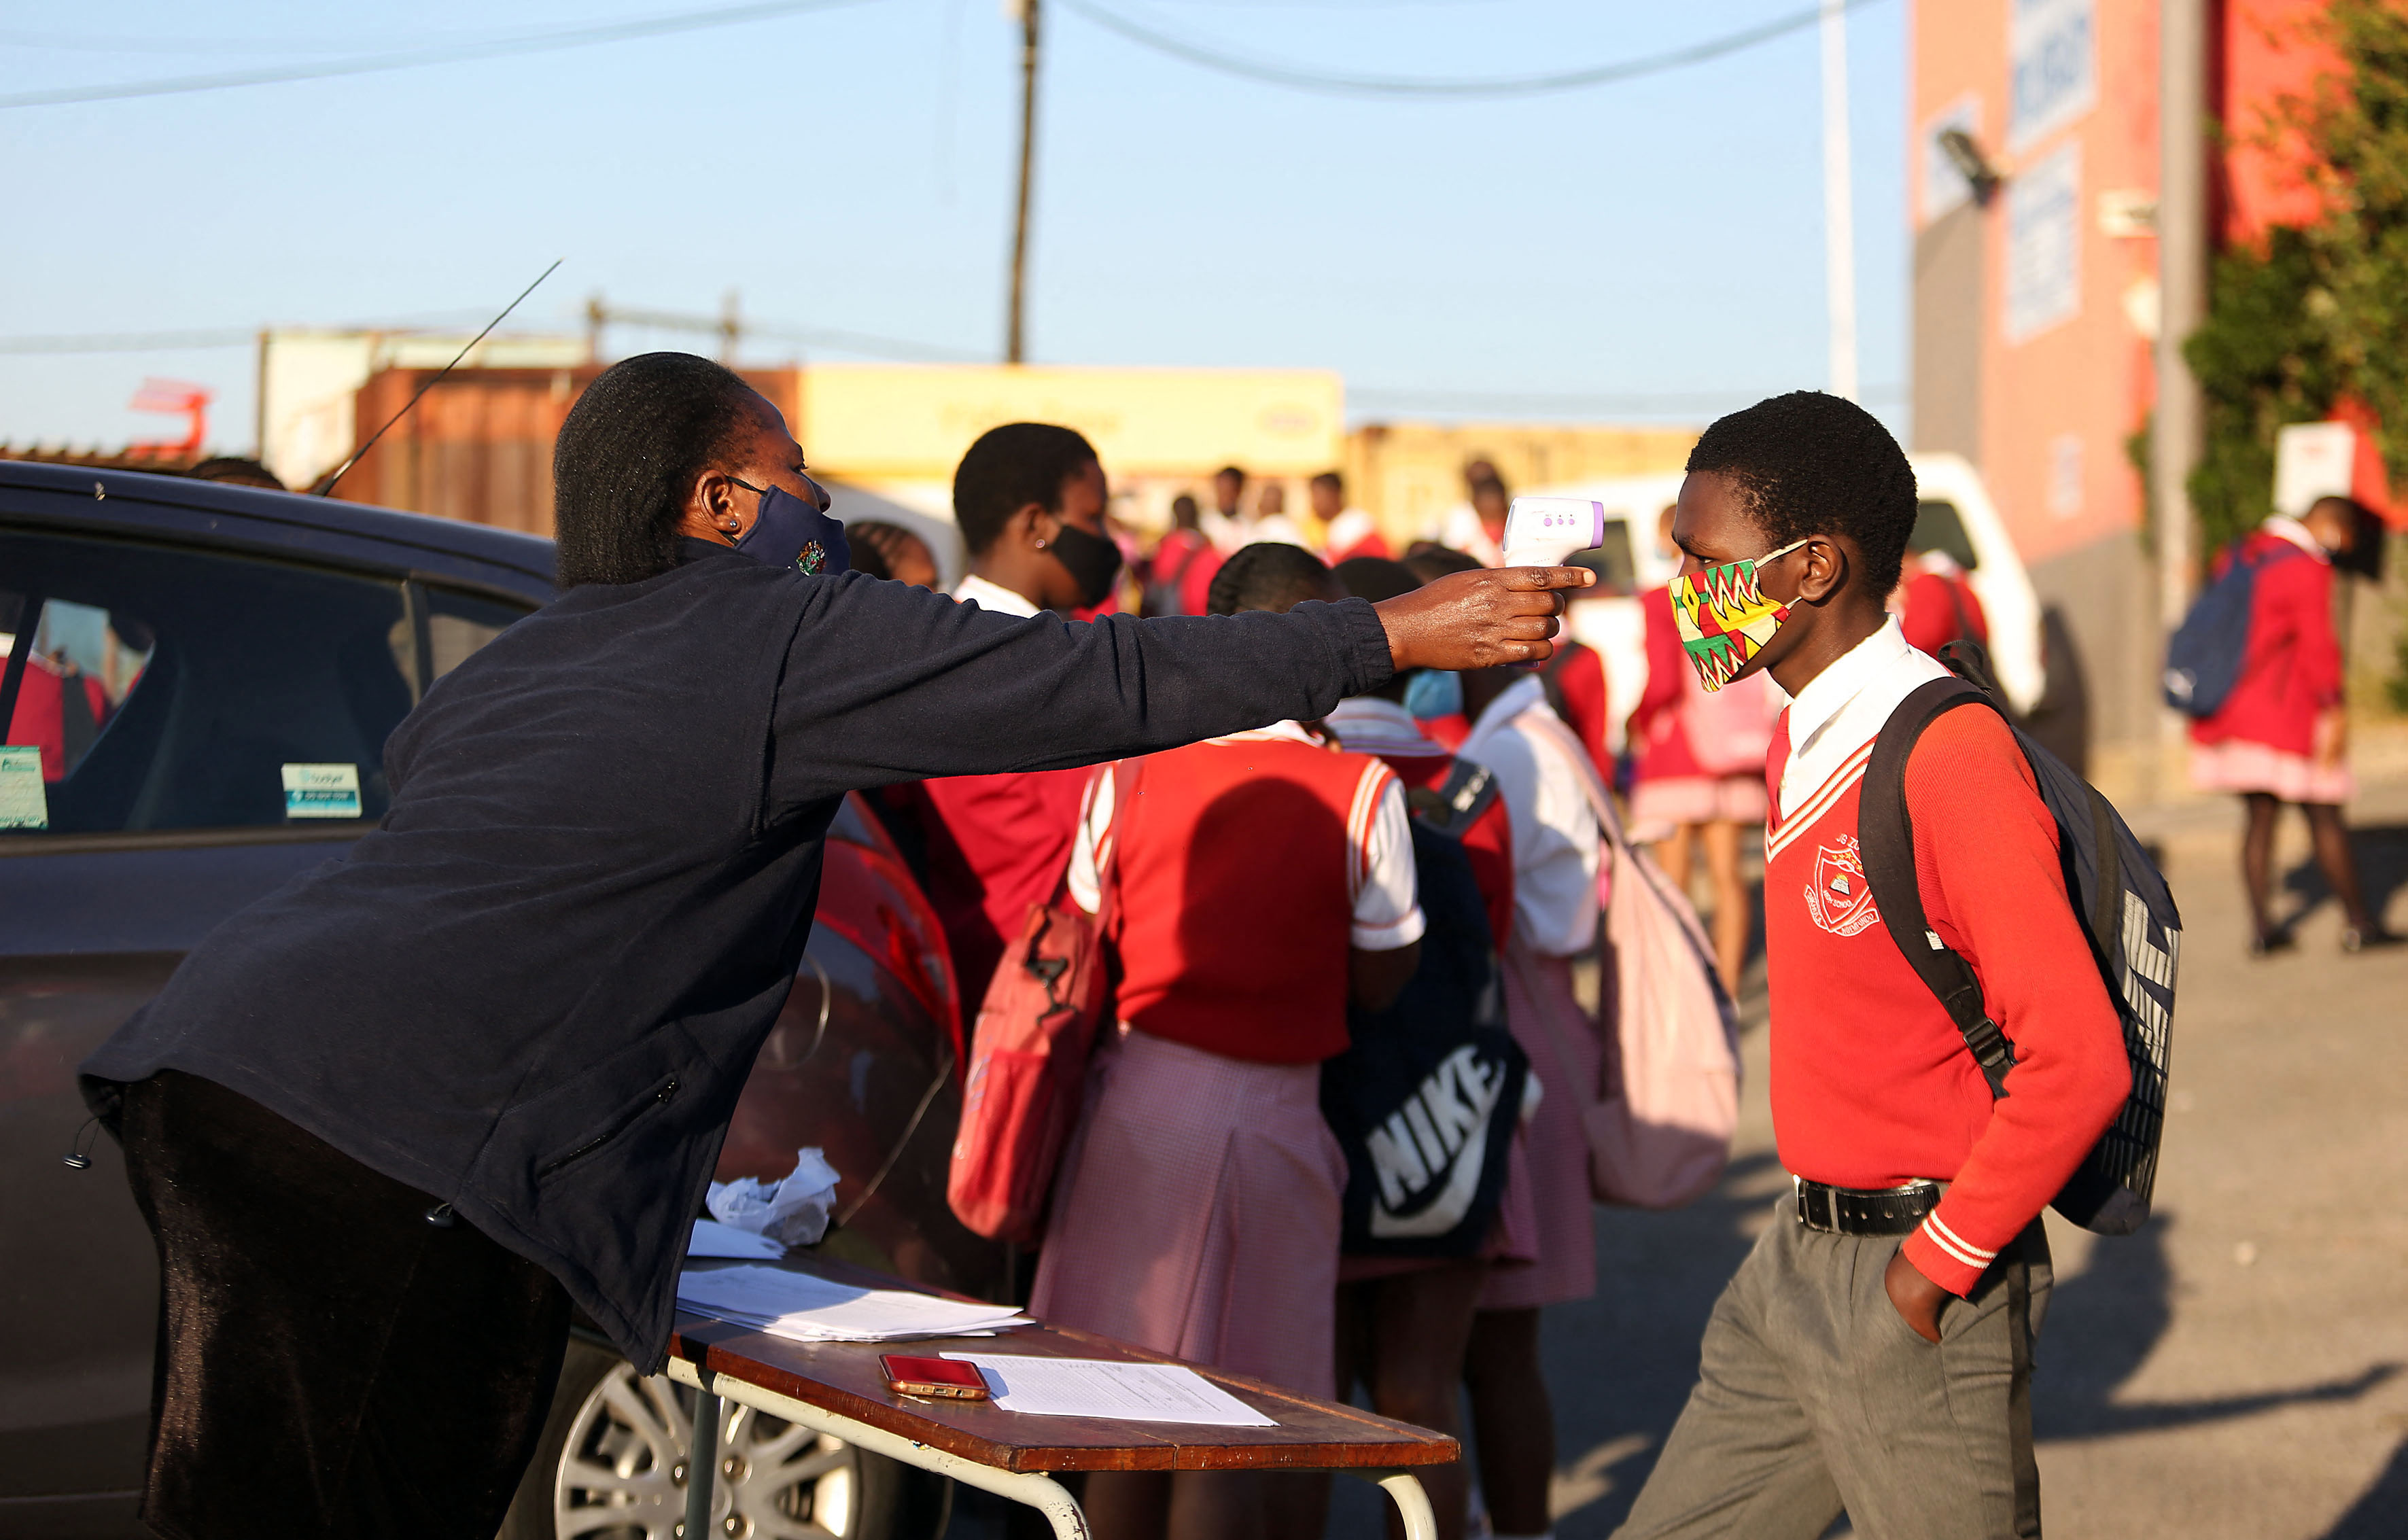 SOUTH AFRICA - Durban - 08 July 2020 - Grade 11 pupils from J.G Zuma High School in Kwamashu, Durban queue early in the morning joining other pupils over 2 million from grade R, 6 and 11 pupils as they return to the classrooms after almost four months at home.Picture: Motshwari Mofokeng/African News Agency/RealTime Images/ABACAPRESS.COMNo Use South Africa out.